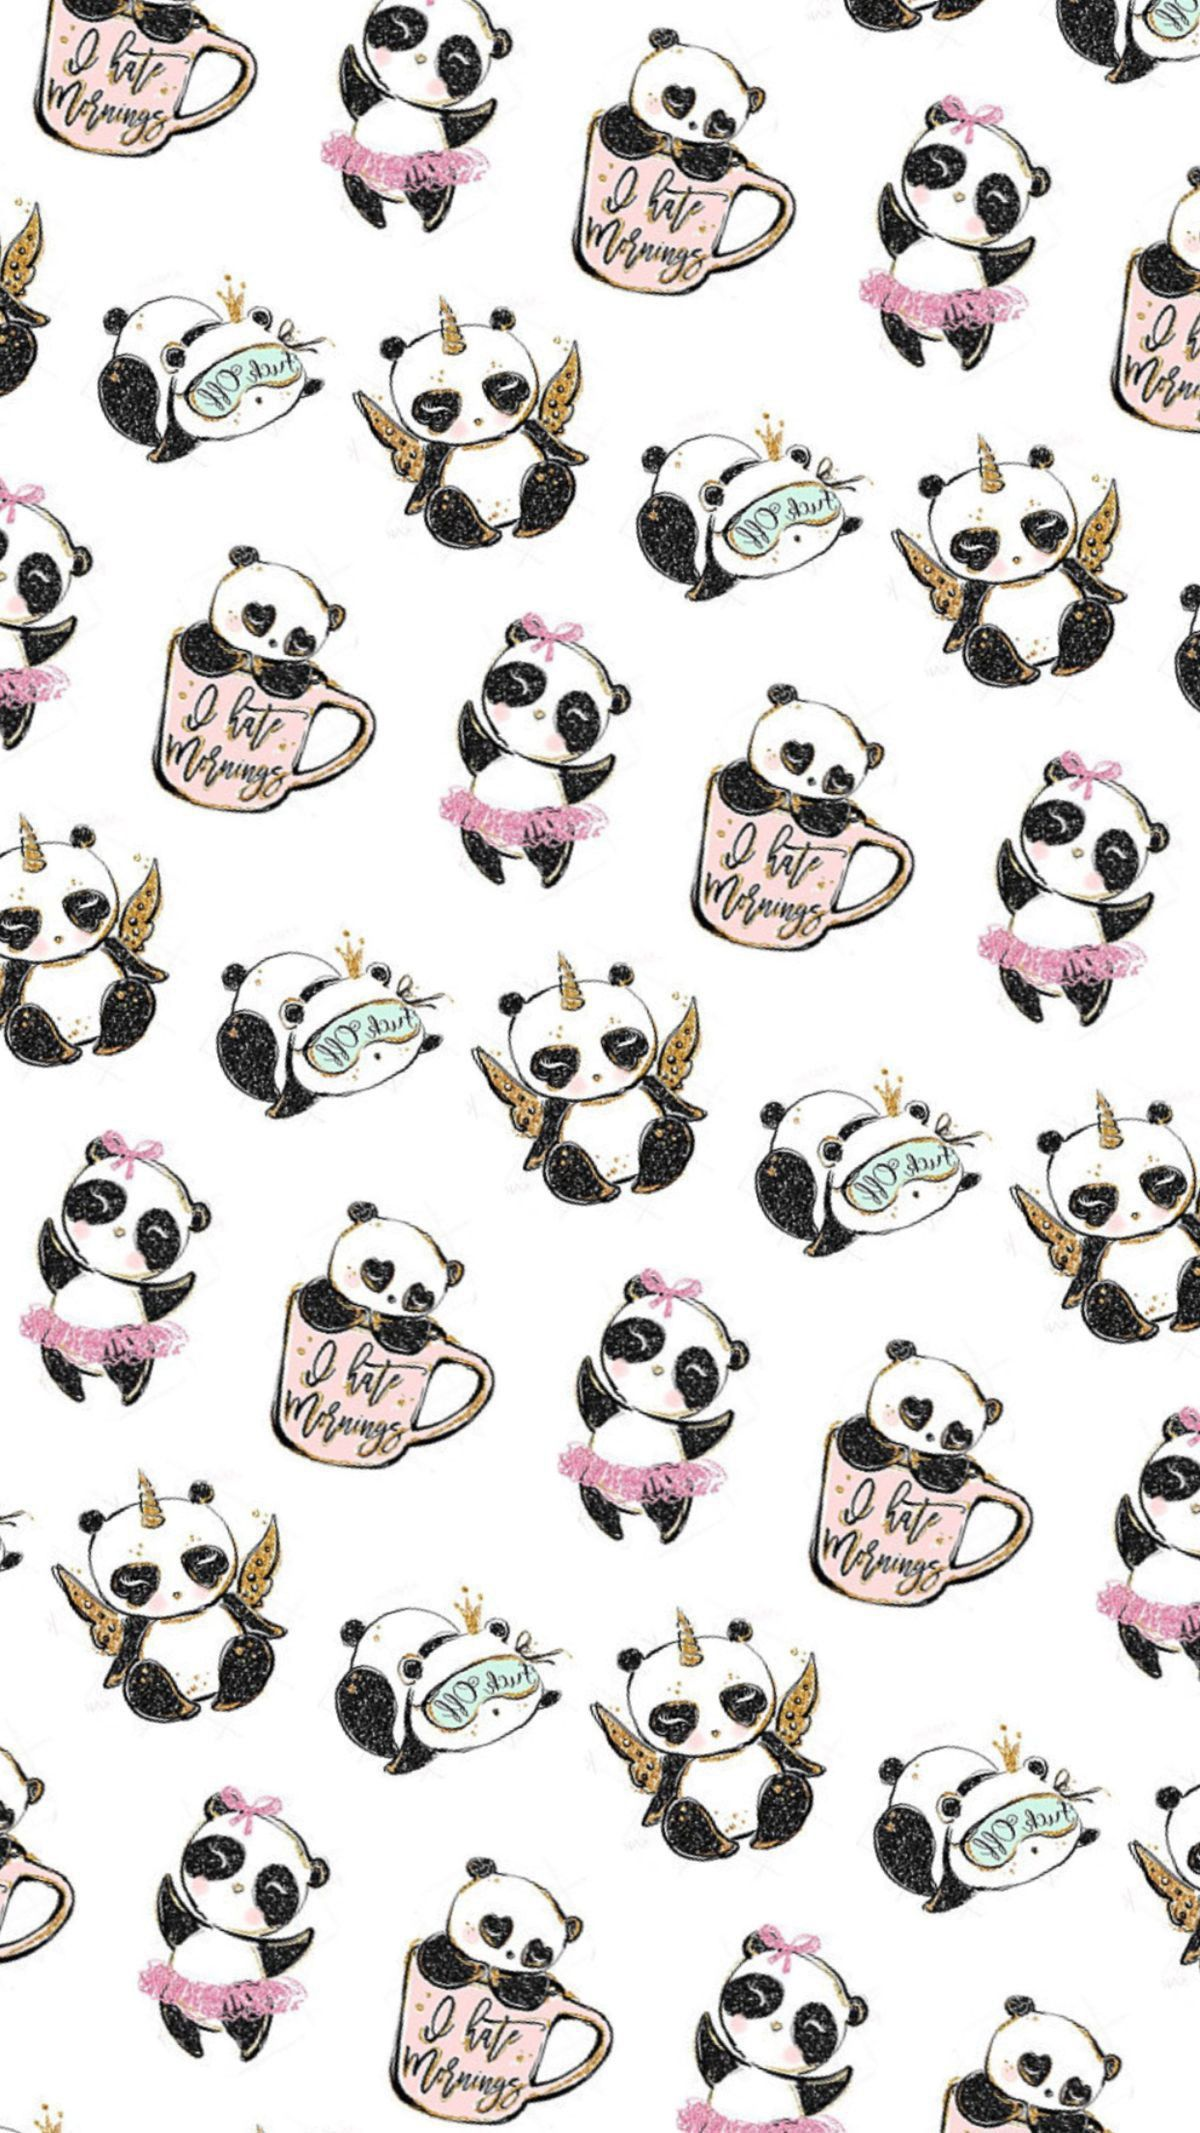 Vision Wallpapers And Backgrounds Panda Wallpapers Cute Panda Wallpaper Panda Wallpaper Iphone